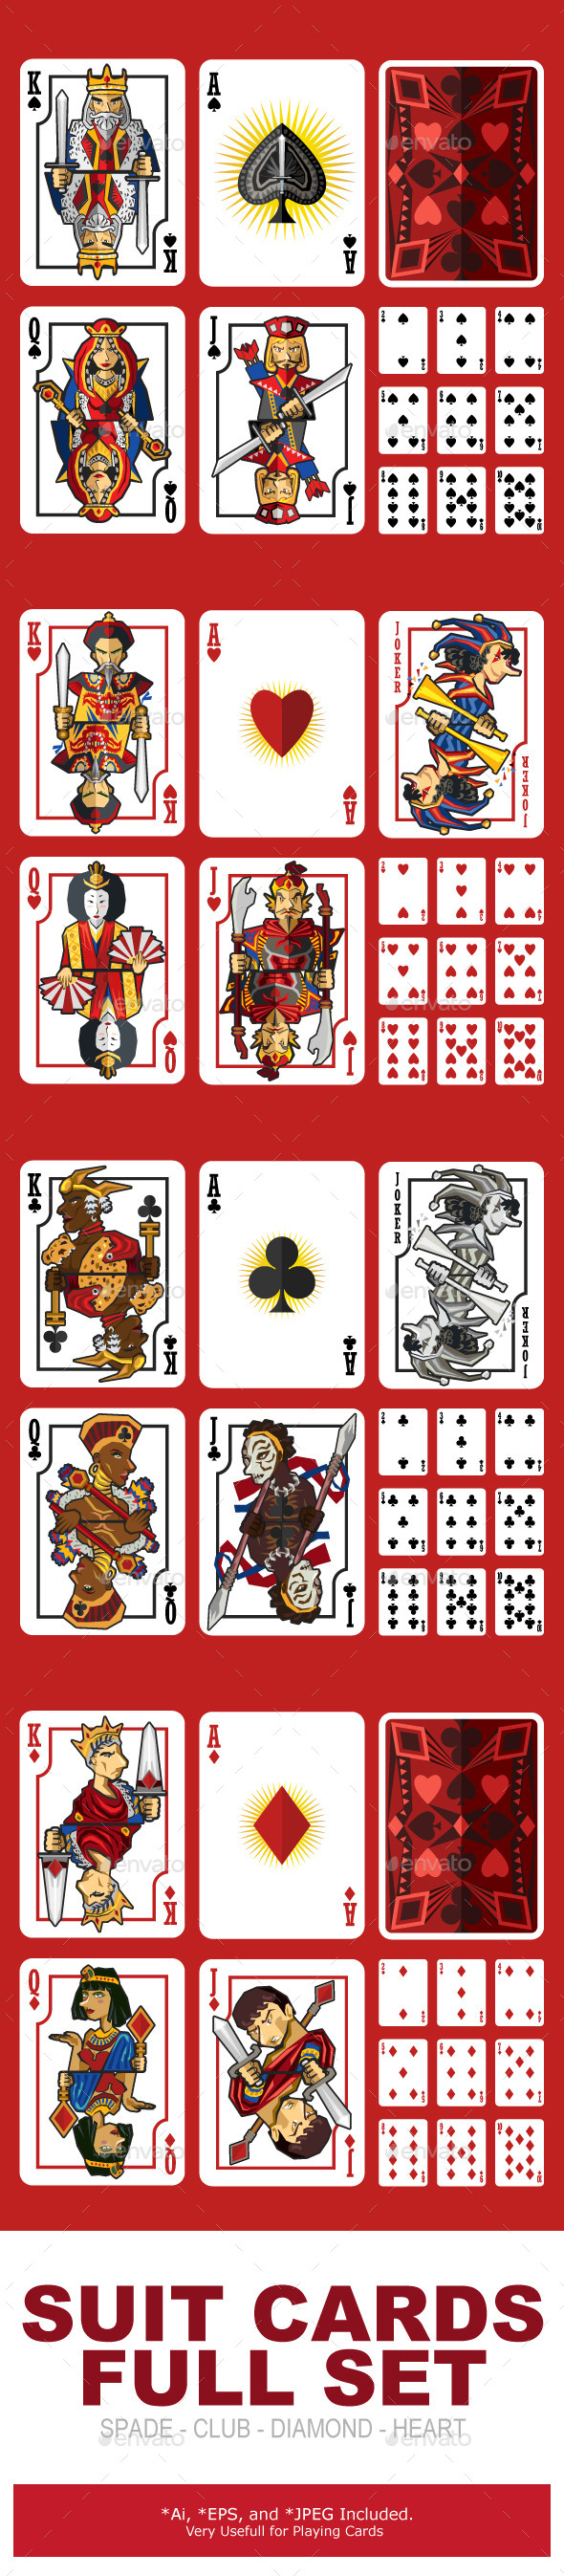 Suit Playing Cards Full Set - Sports/Activity Conceptual